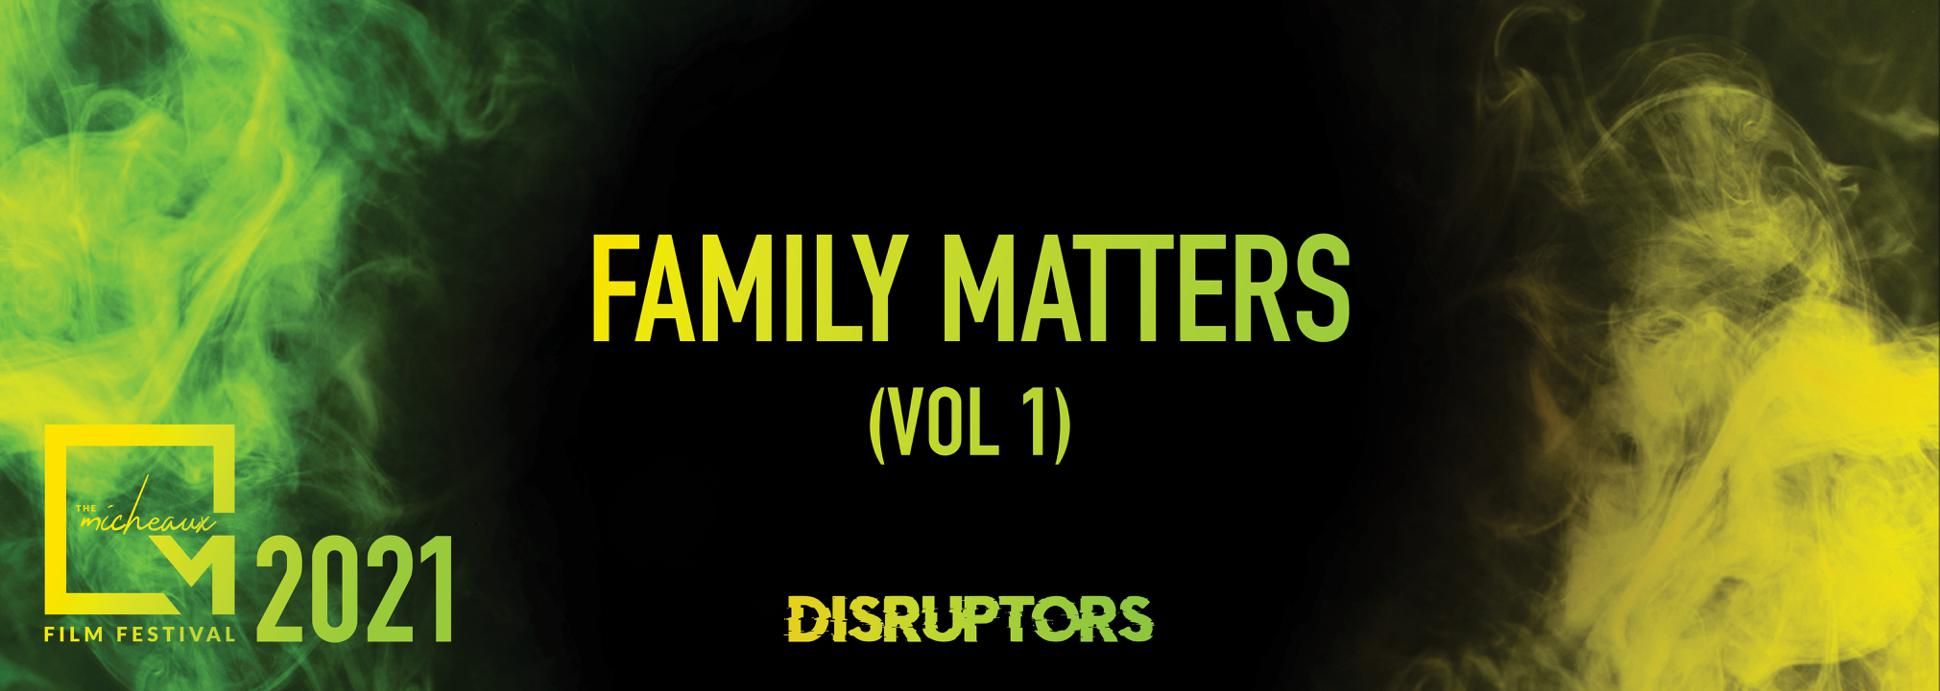 Family Matters (vol. 1)